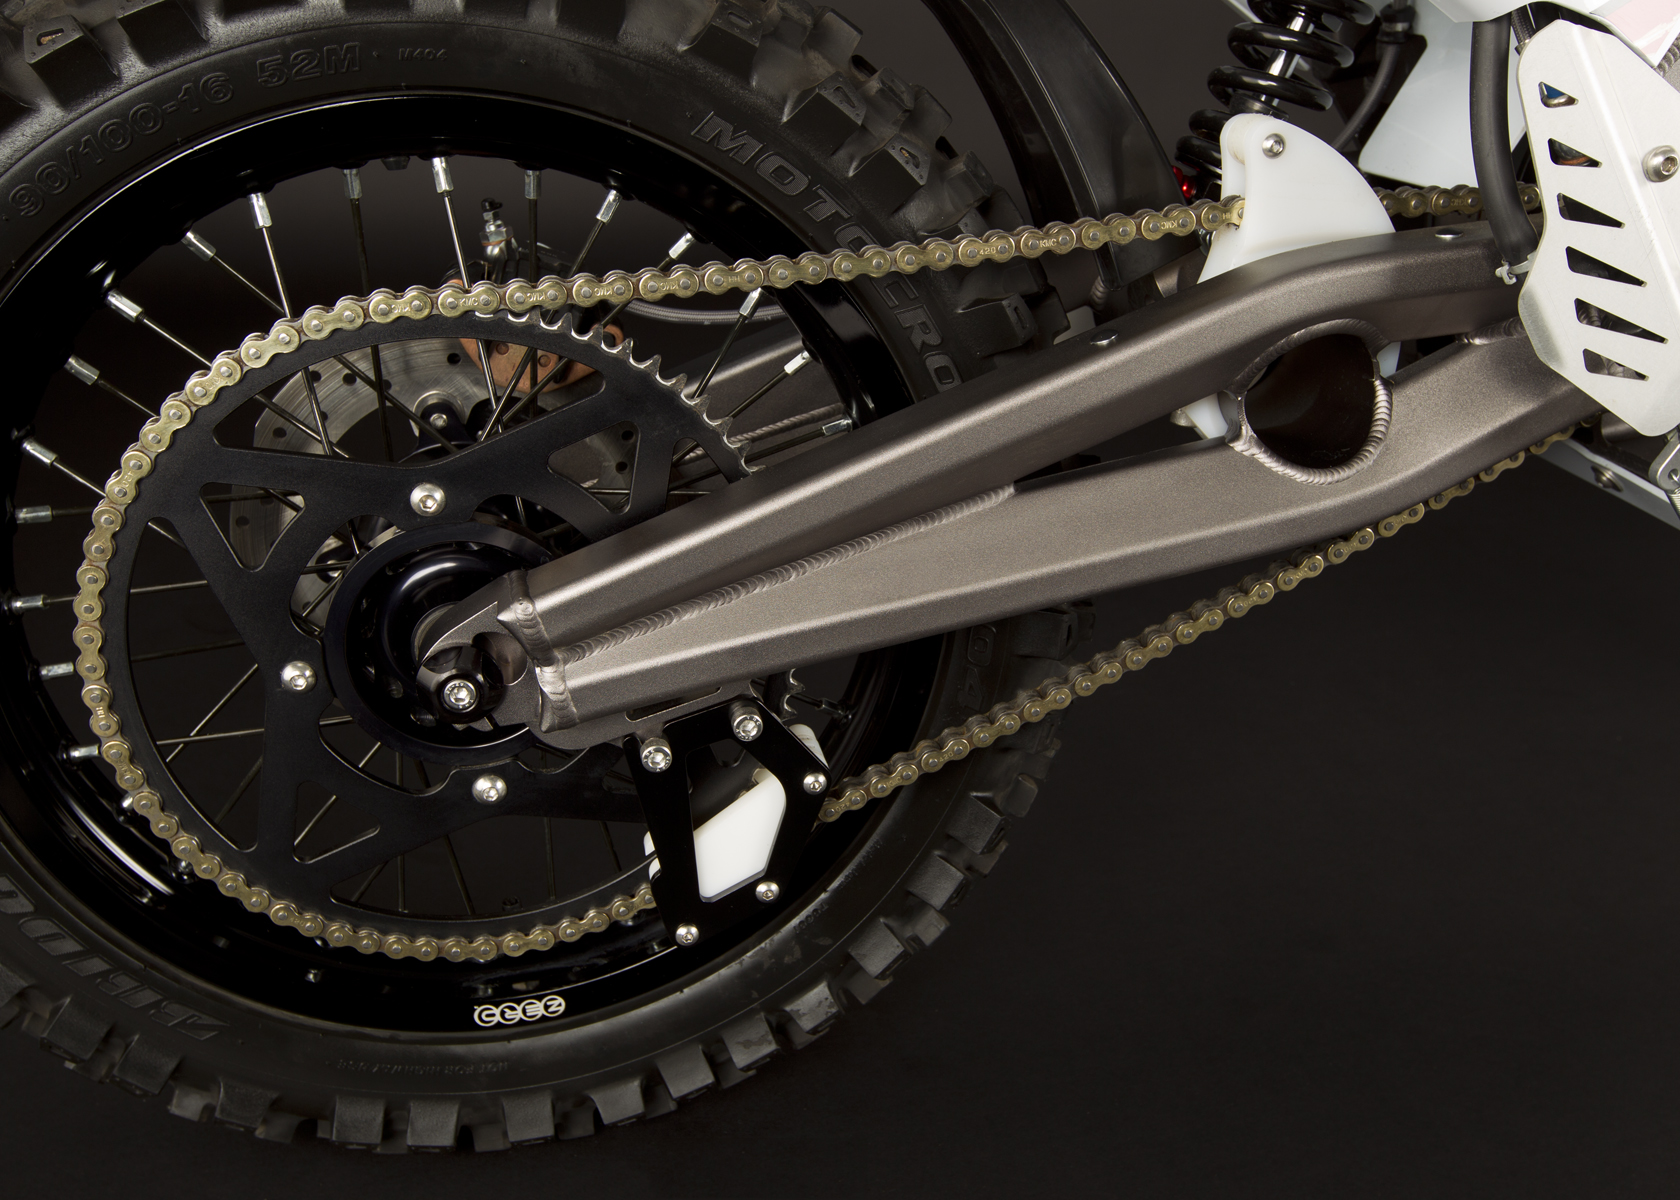 2011 Zero MX Electric Motorcycle: Swingarm